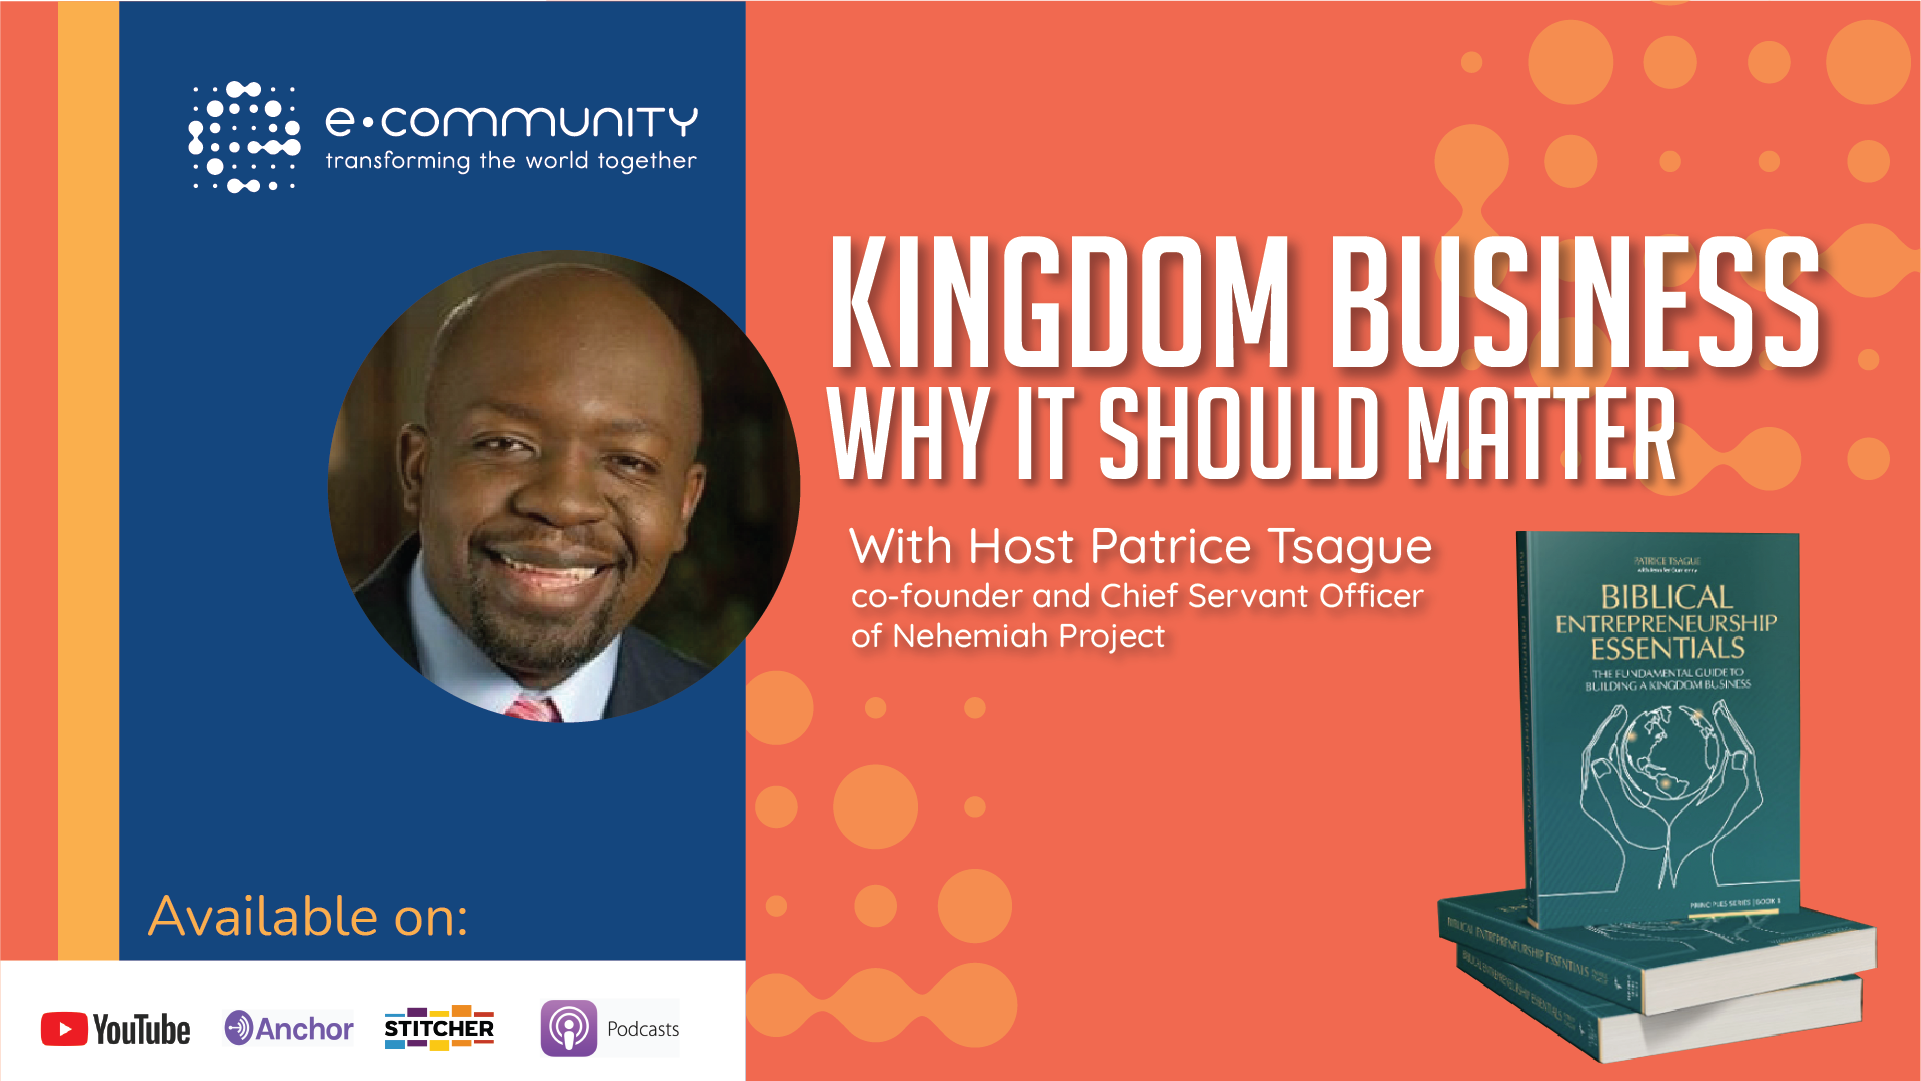 Kingdom Business - Why it should matter